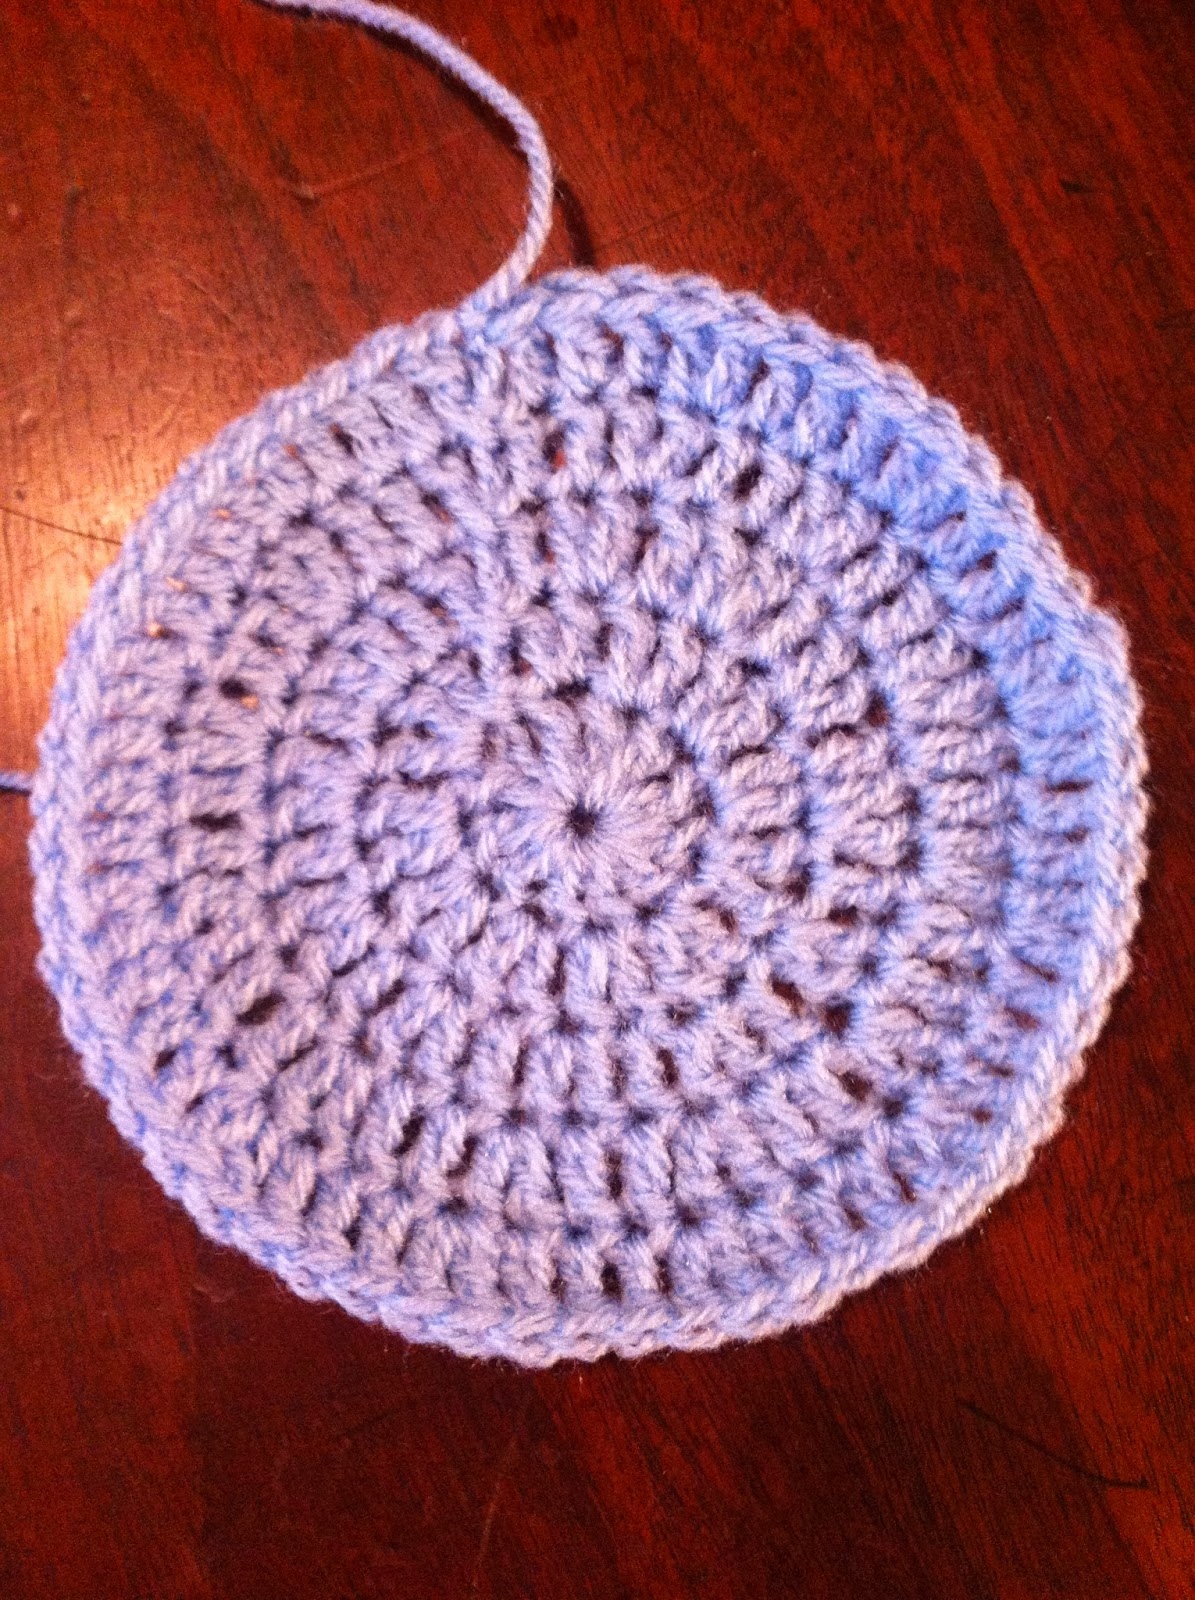 Crochet Classes : Get Hooked on Crochet: Day 269 - More Crochet Class action!!